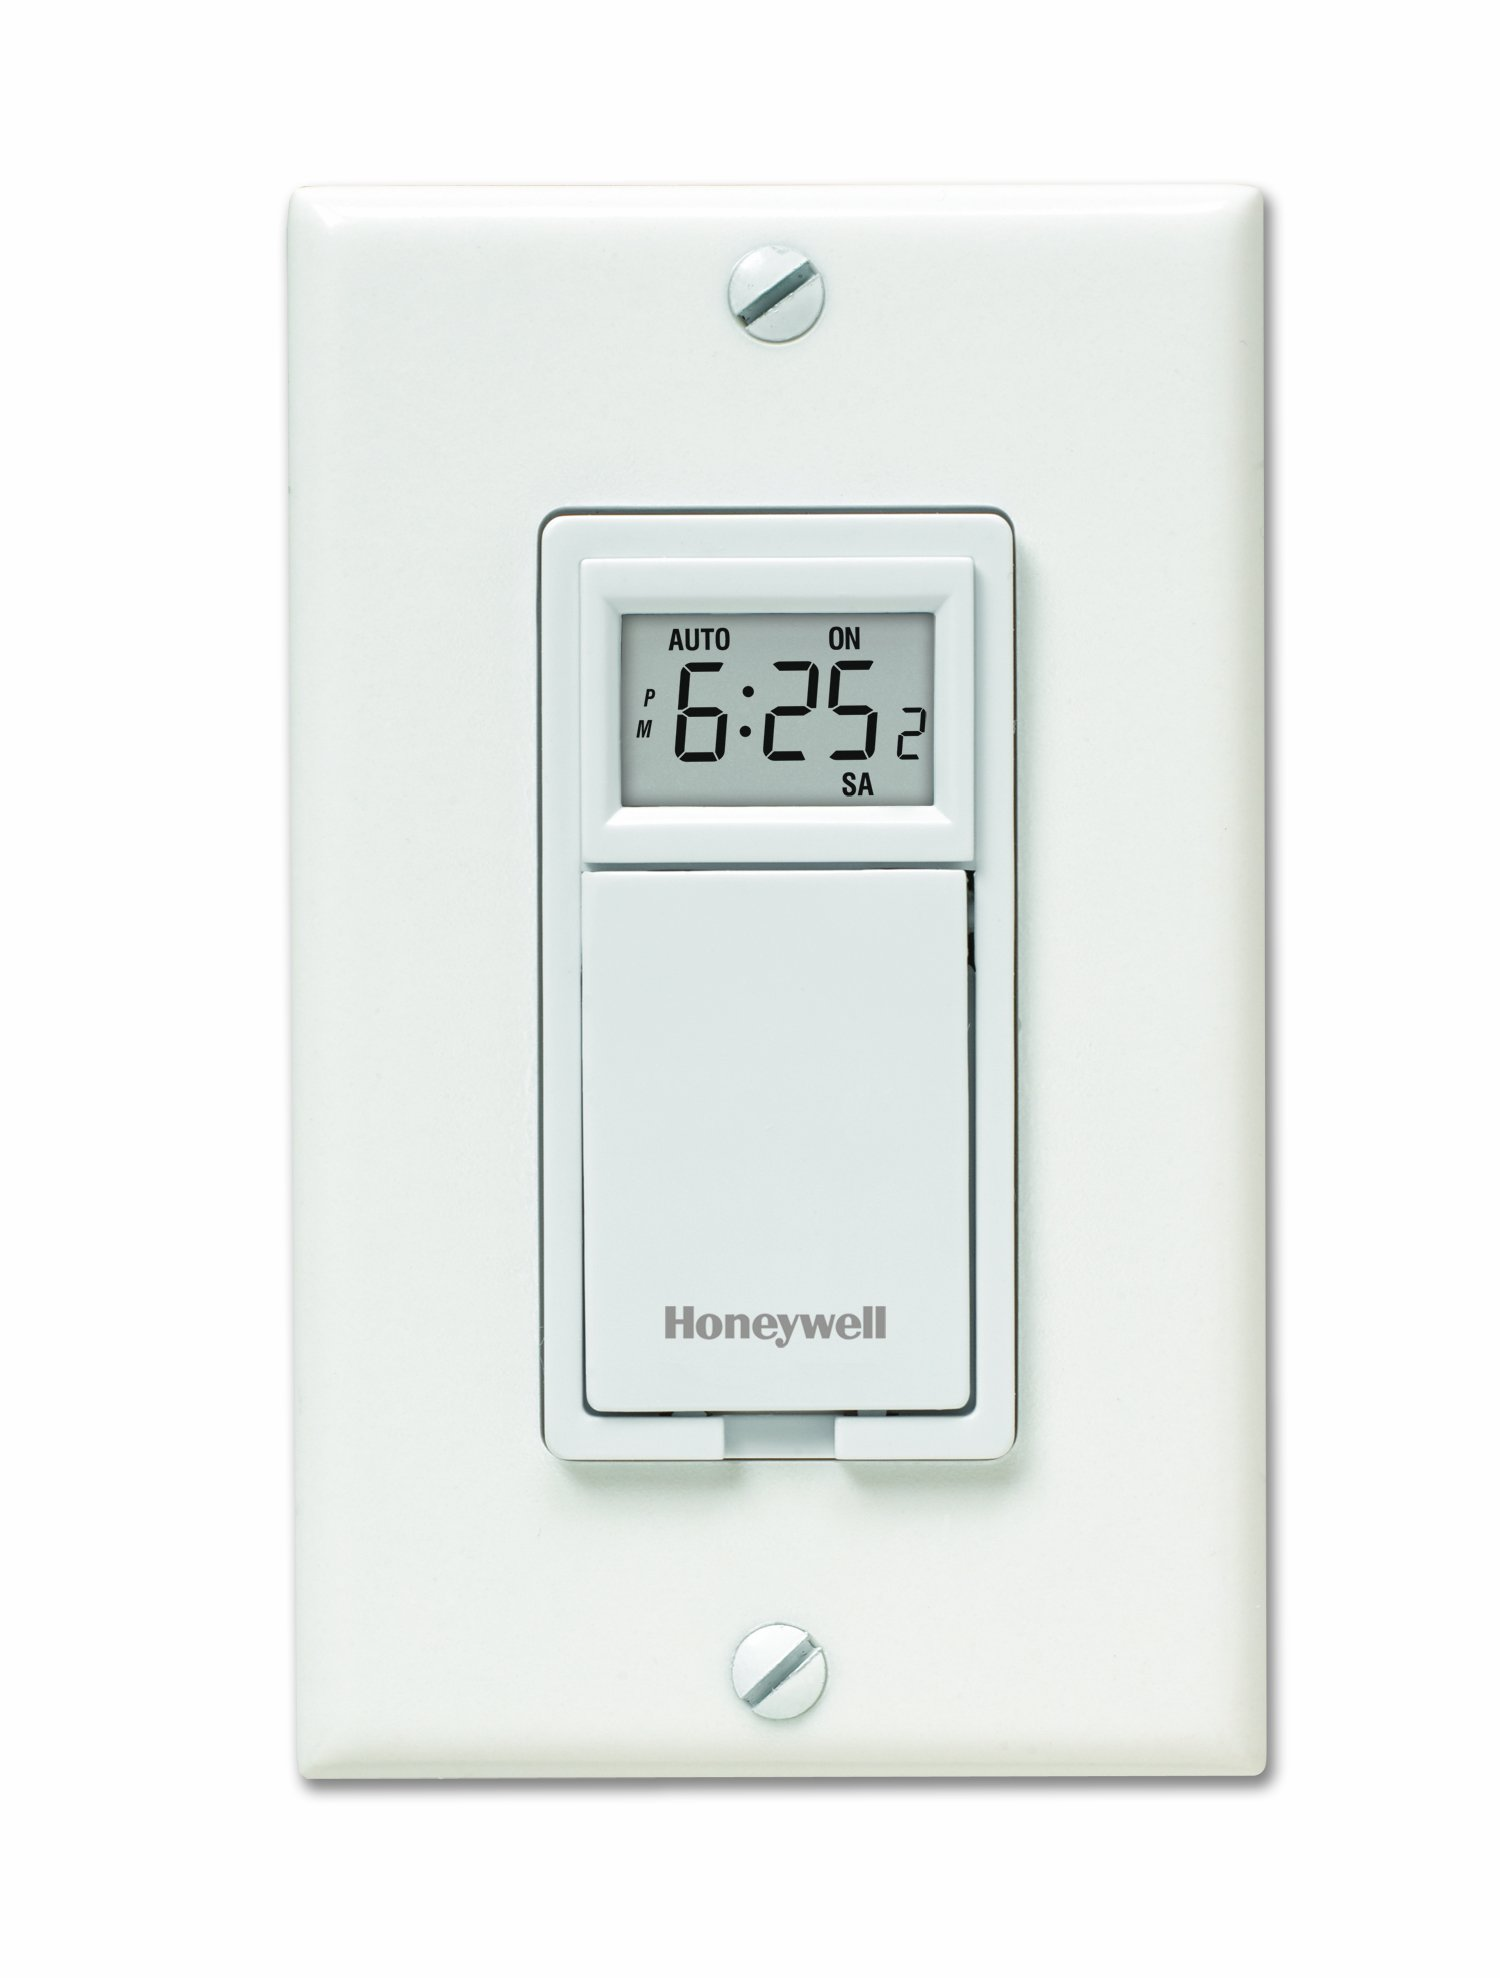 Honeywell Rpls730b1000 U 7 Day Programmable Light Switch Mdc300120151 Brushless Speed Controllers 1hp And Over Timer Home Improvement